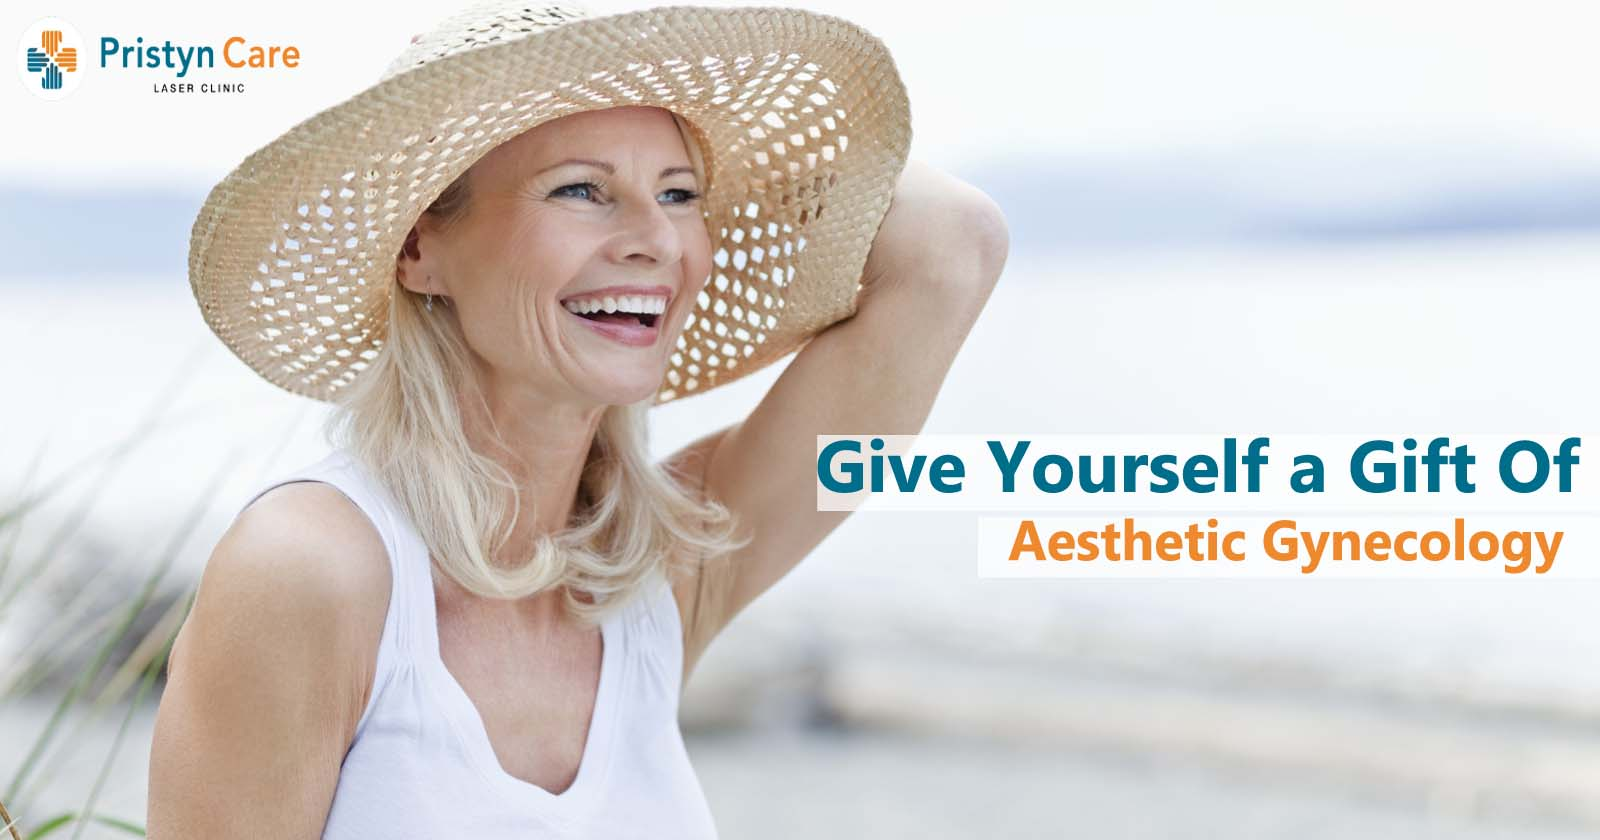 Give Yourself a Gift of Aesthetic Gynecology